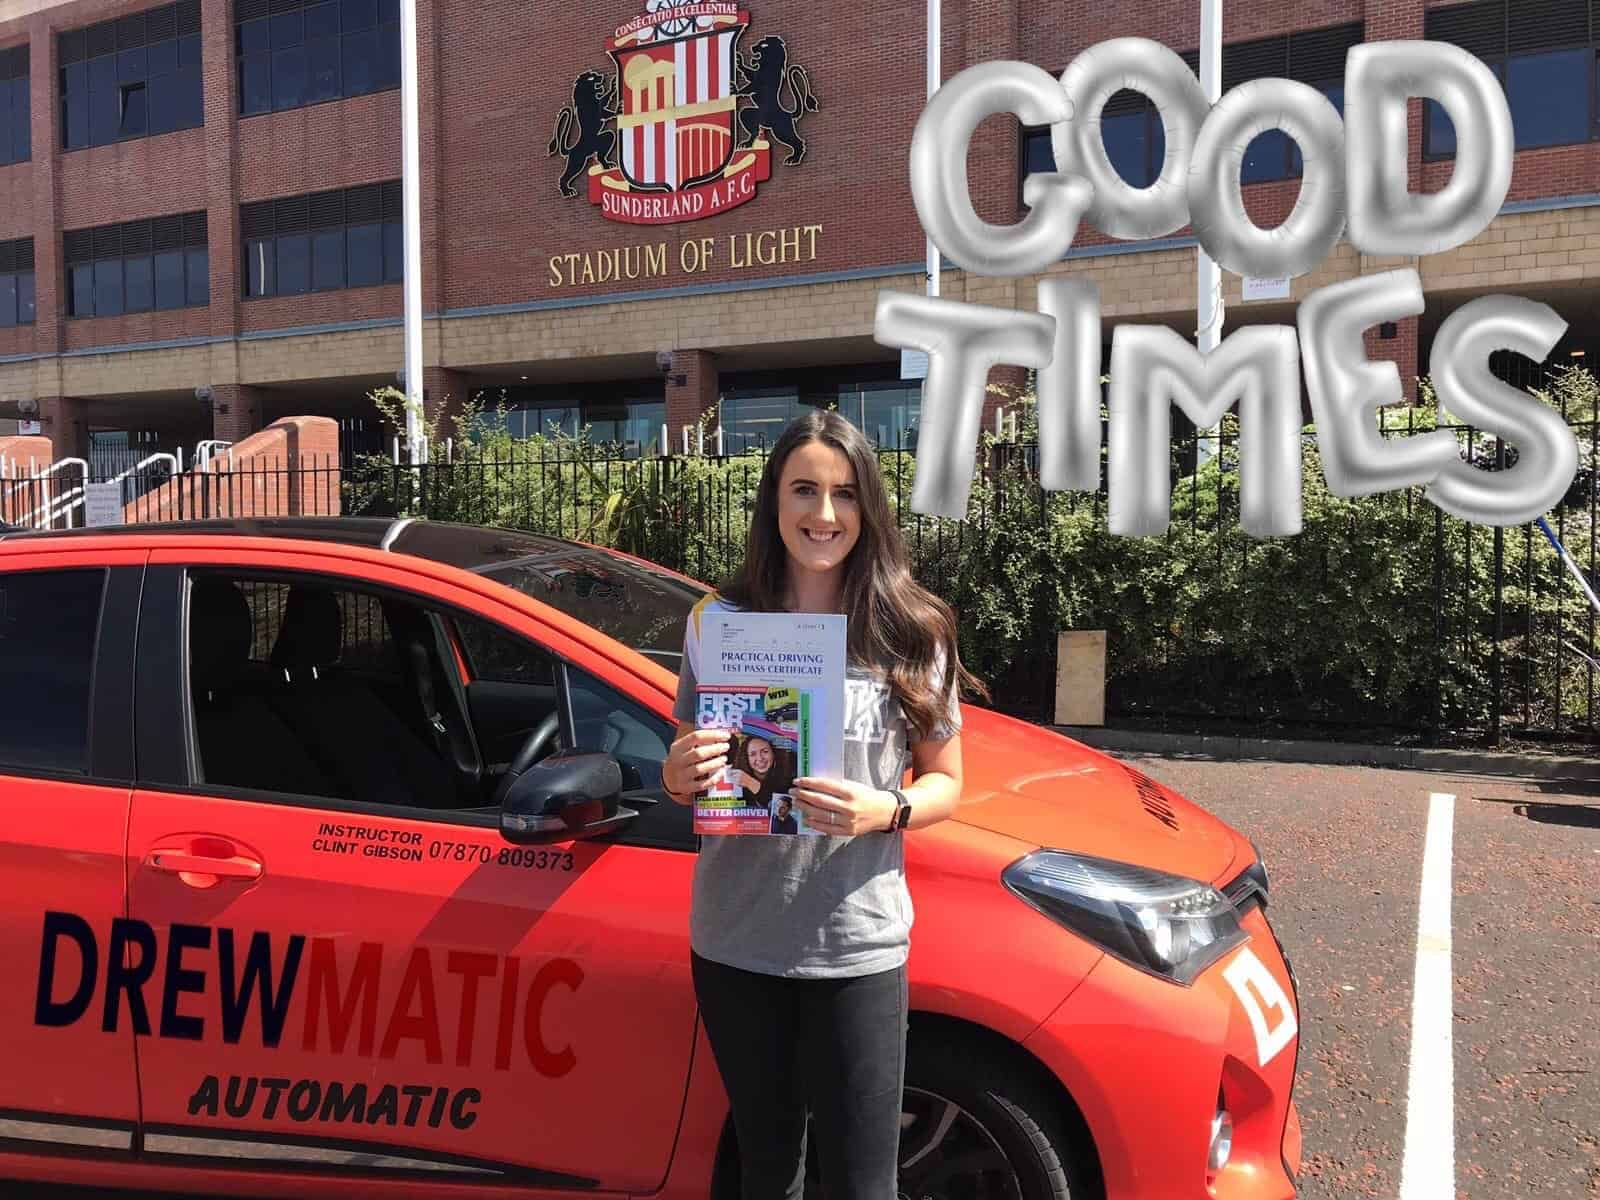 Automatic Driving Lessons Hetton